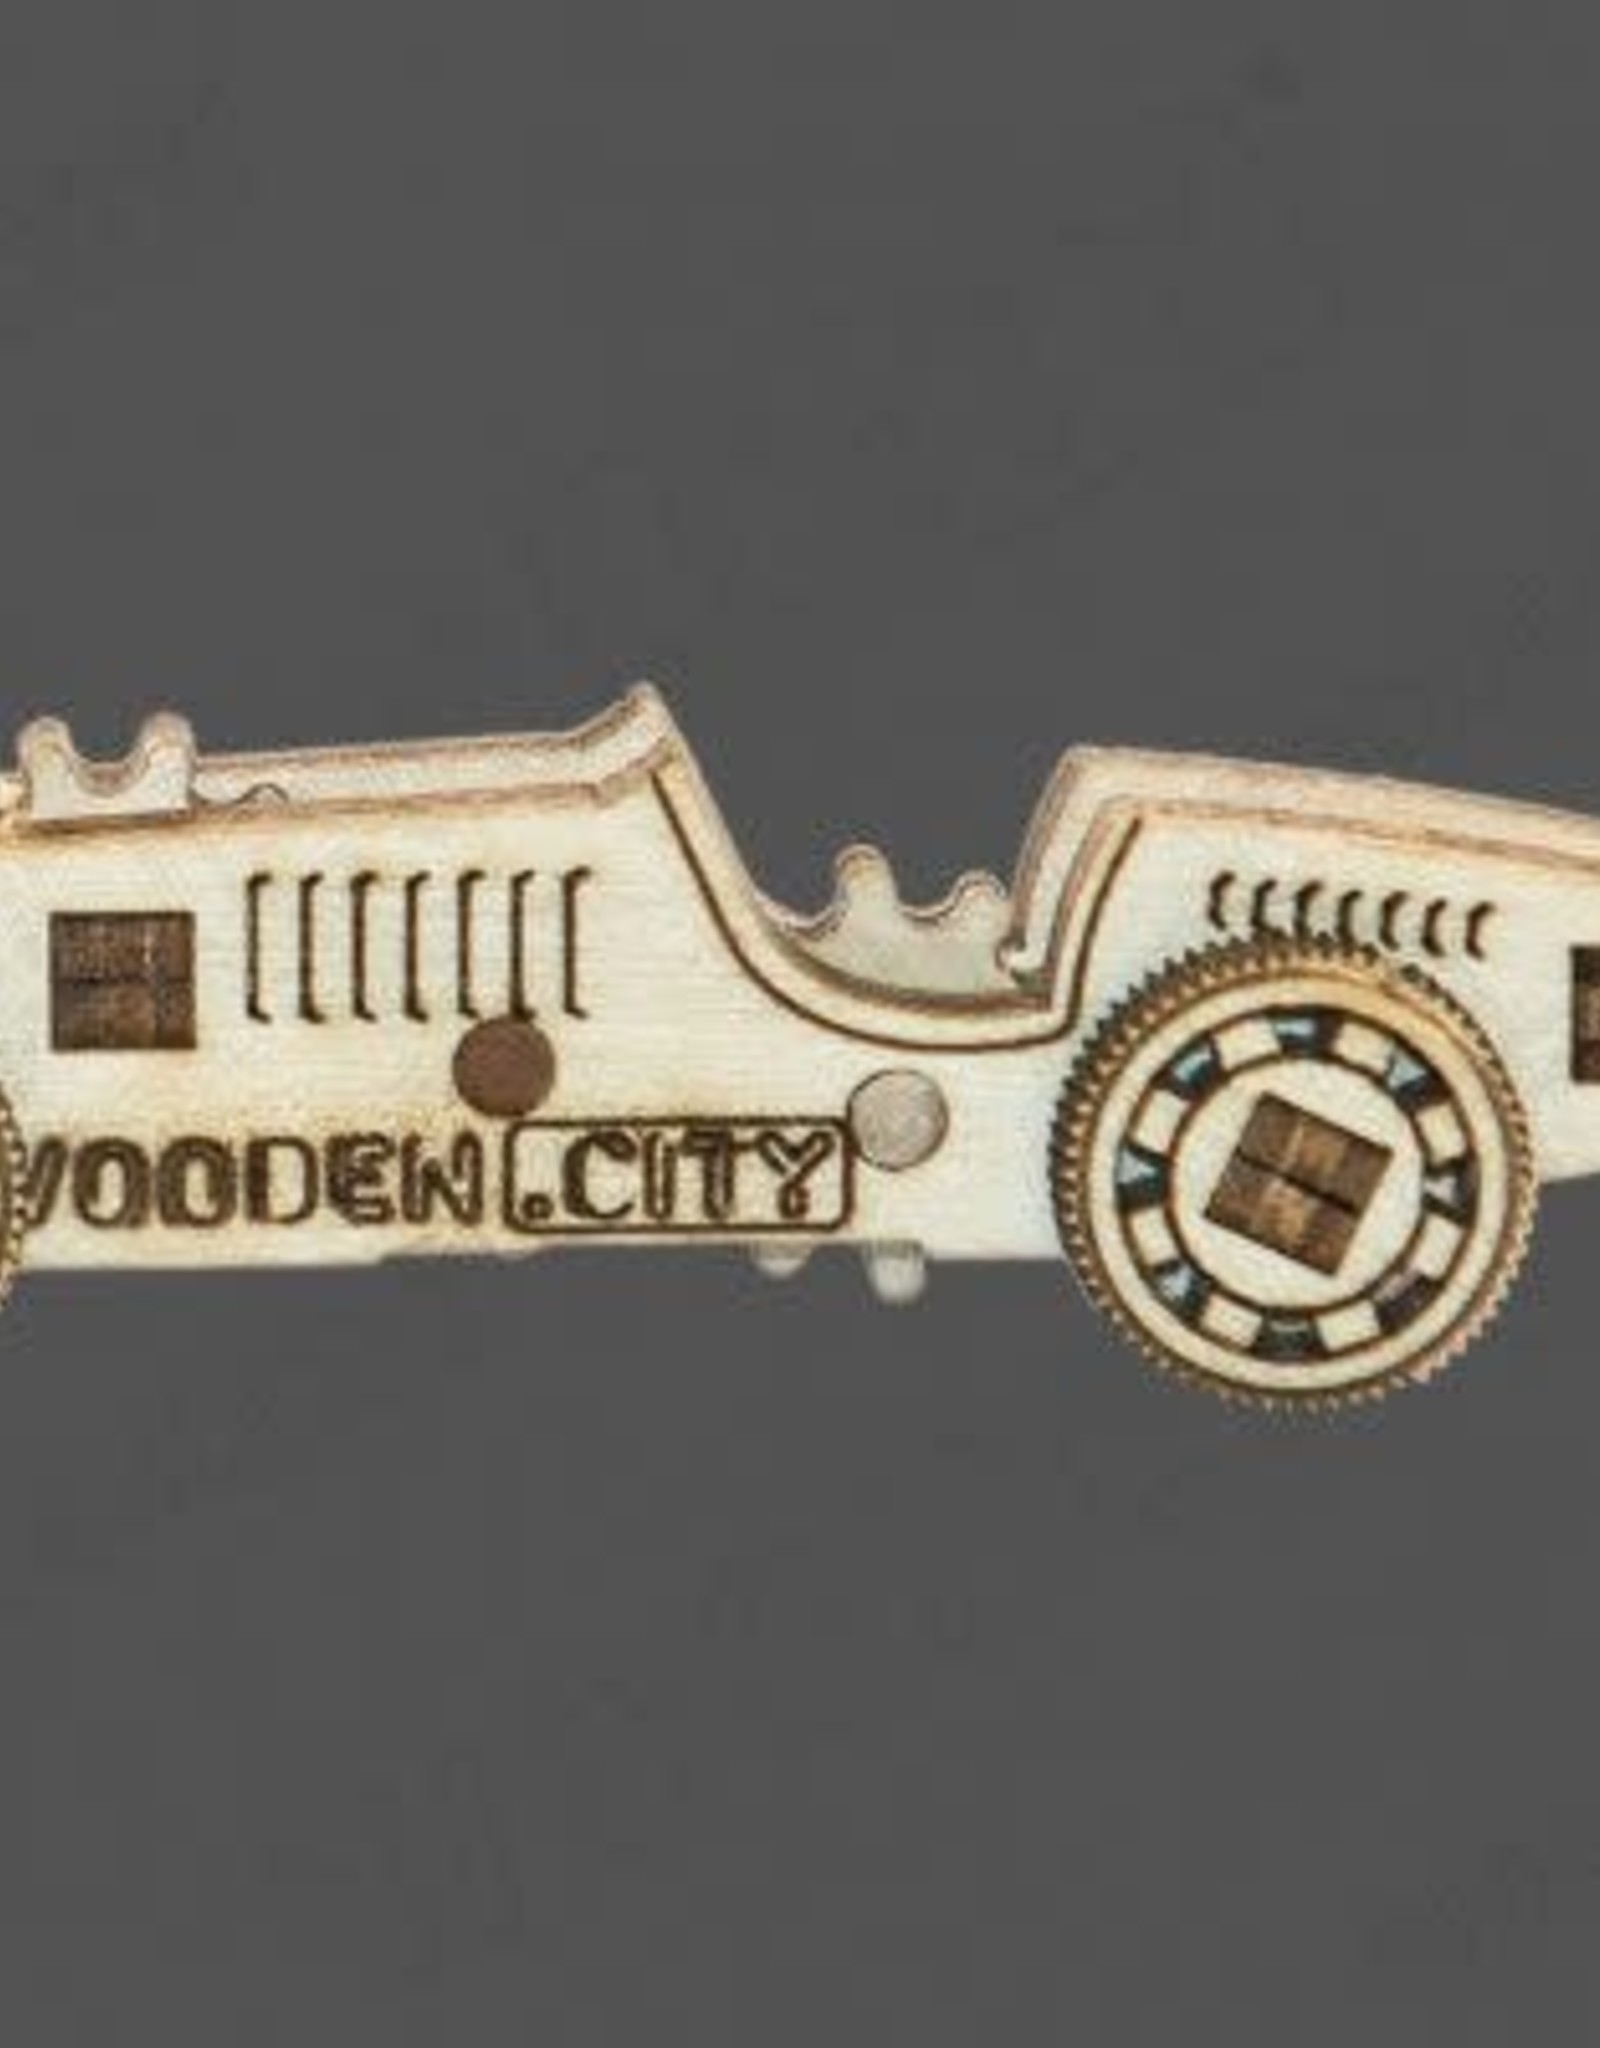 Wooden.City WoodenCity Widgets Sports Cars